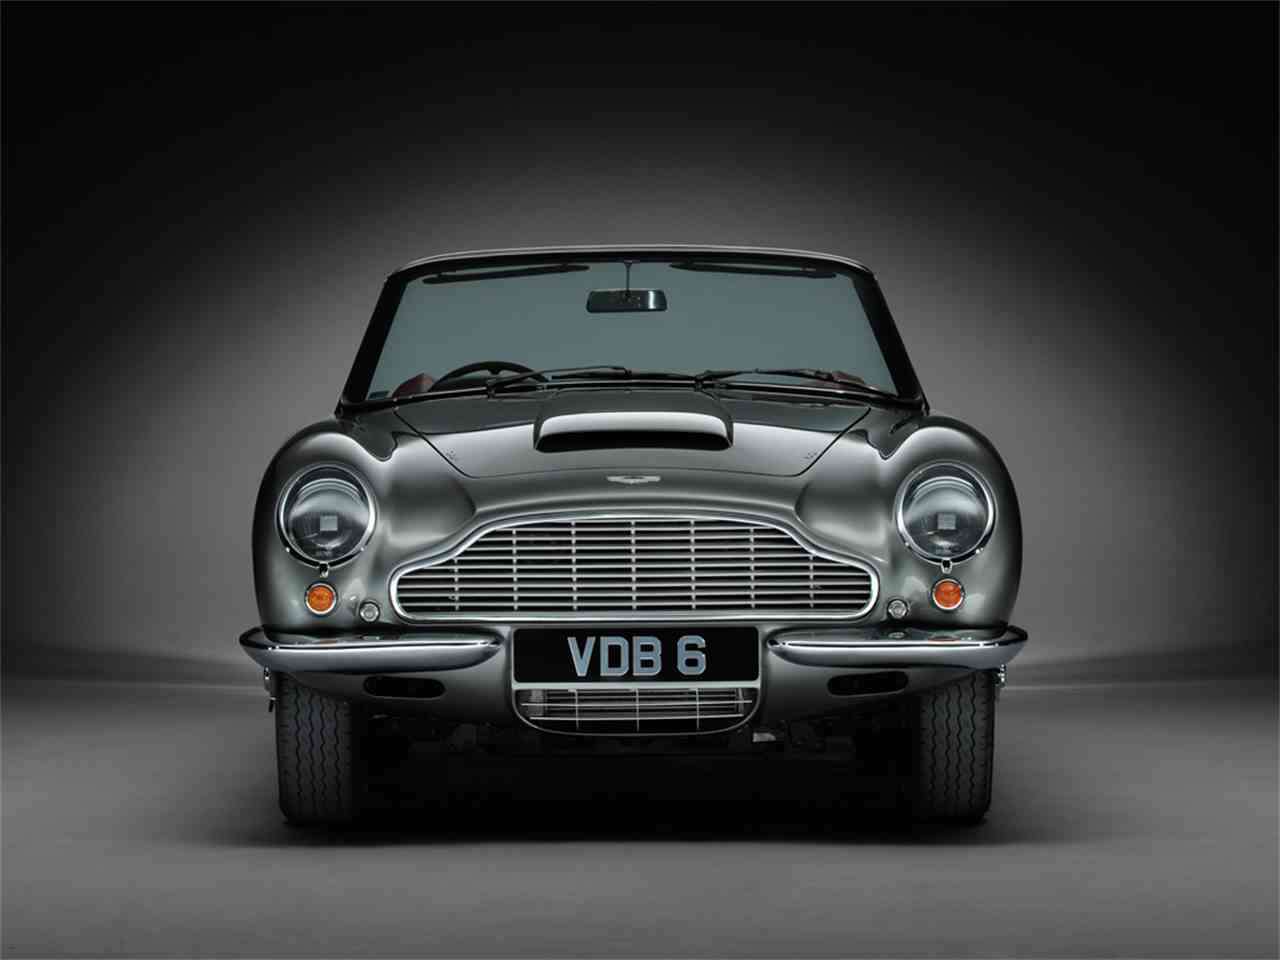 Large Picture of Classic 1967 DB6 MKI Vantage Volante located in Maldon, Essex  Offered by JD Classics LTD - IVCB